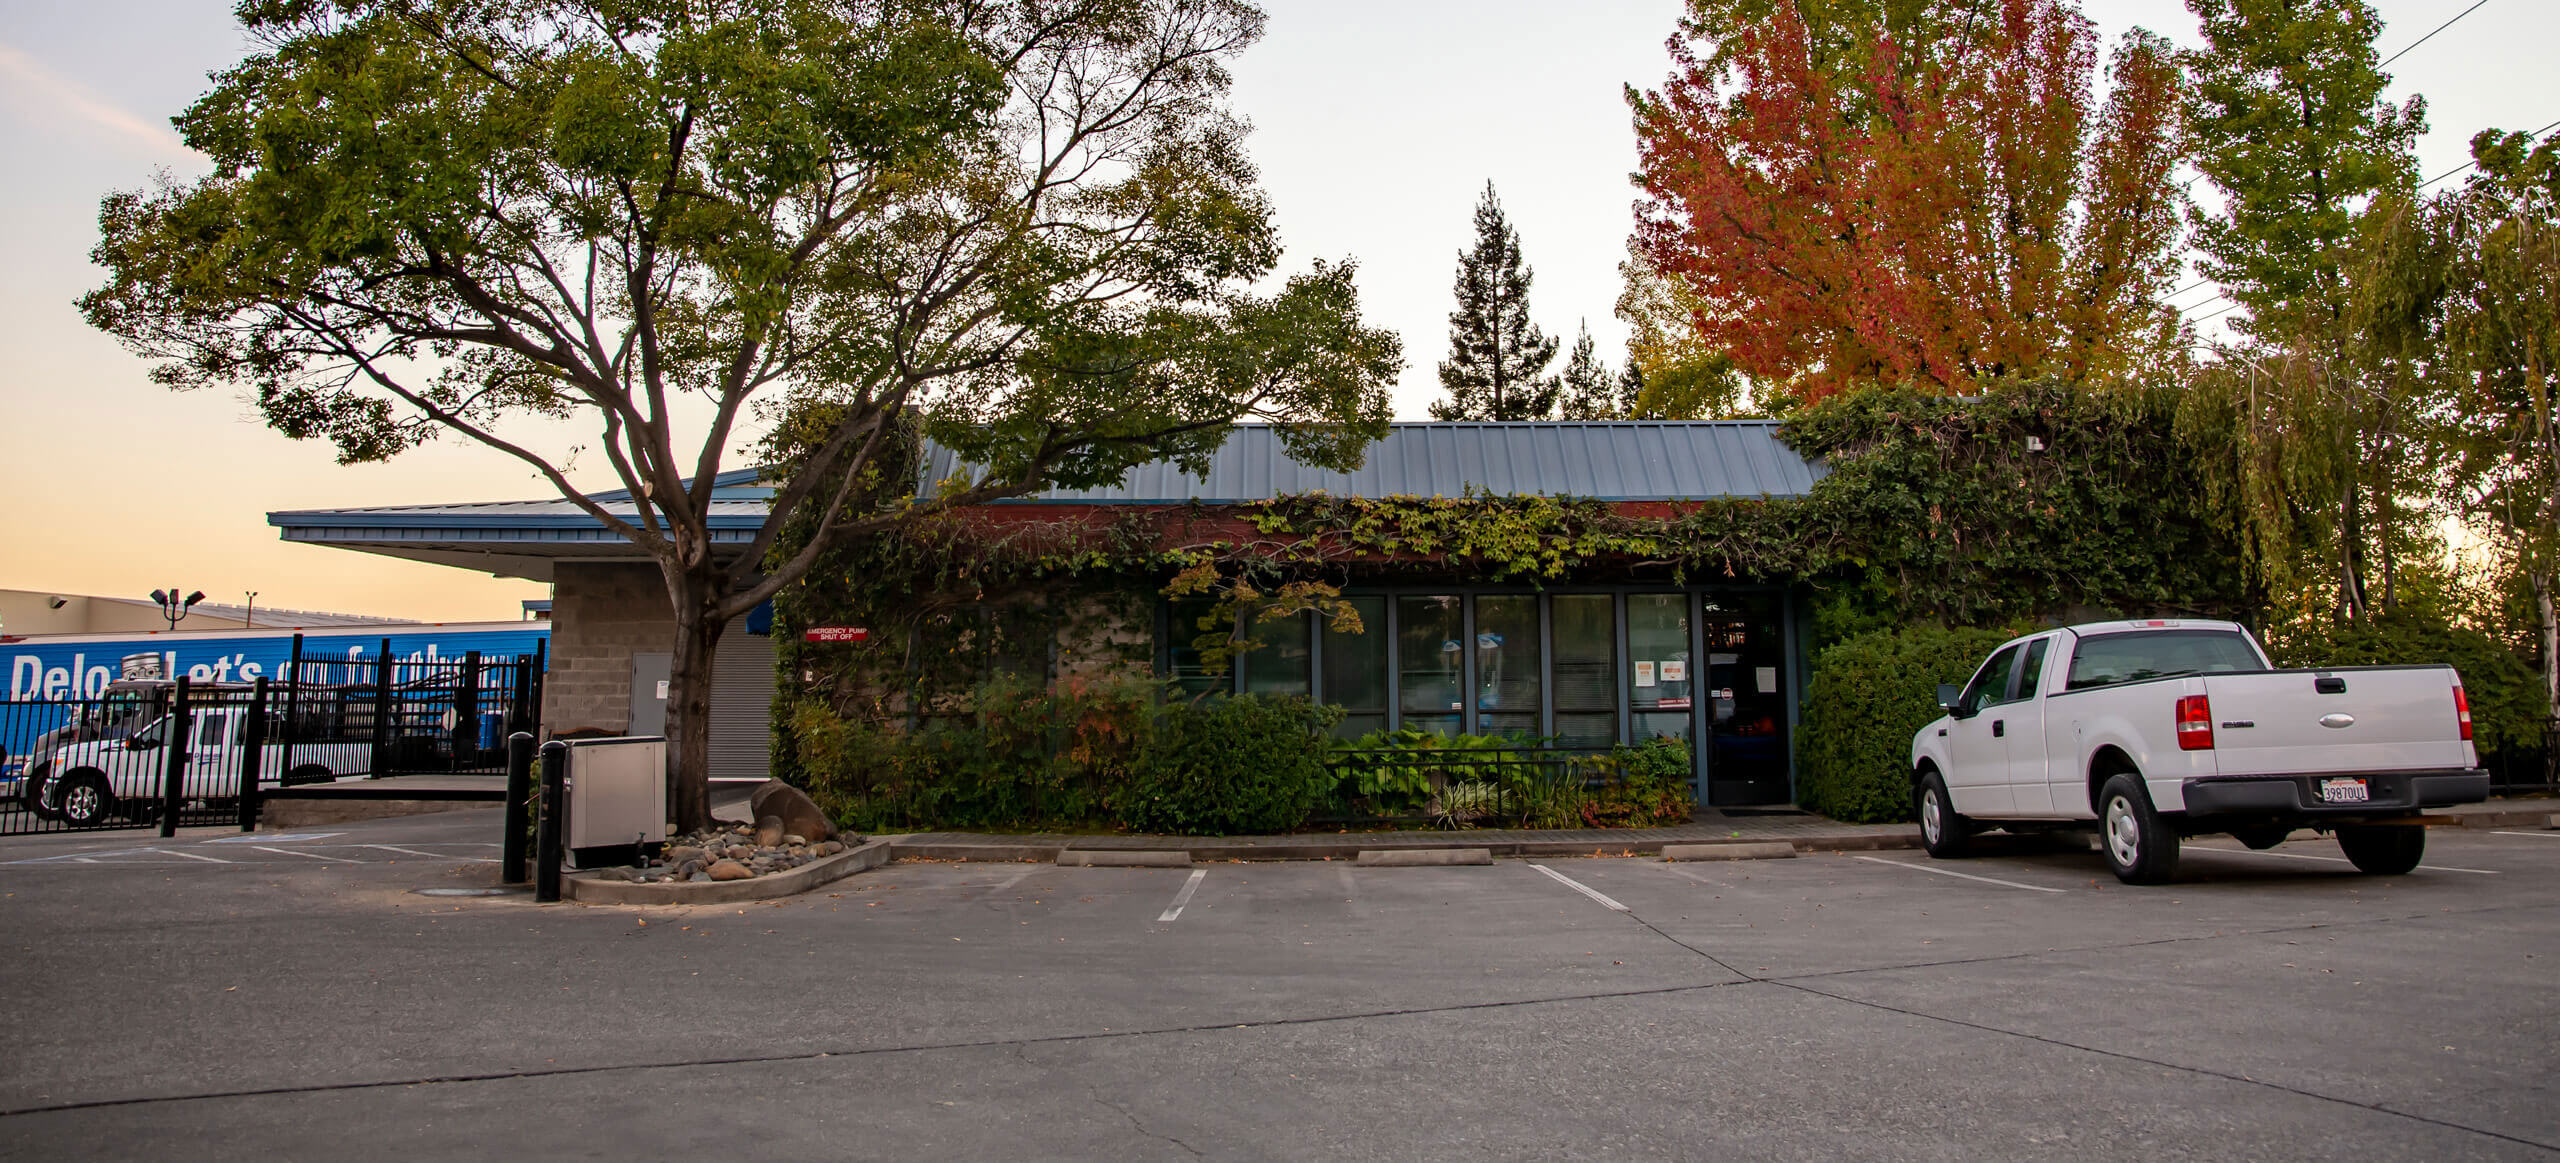 Our main business office is at 4325 Pacific Street, Rocklin, California. Oil is only sold by the case at this location. We offer a variety of fuel types.